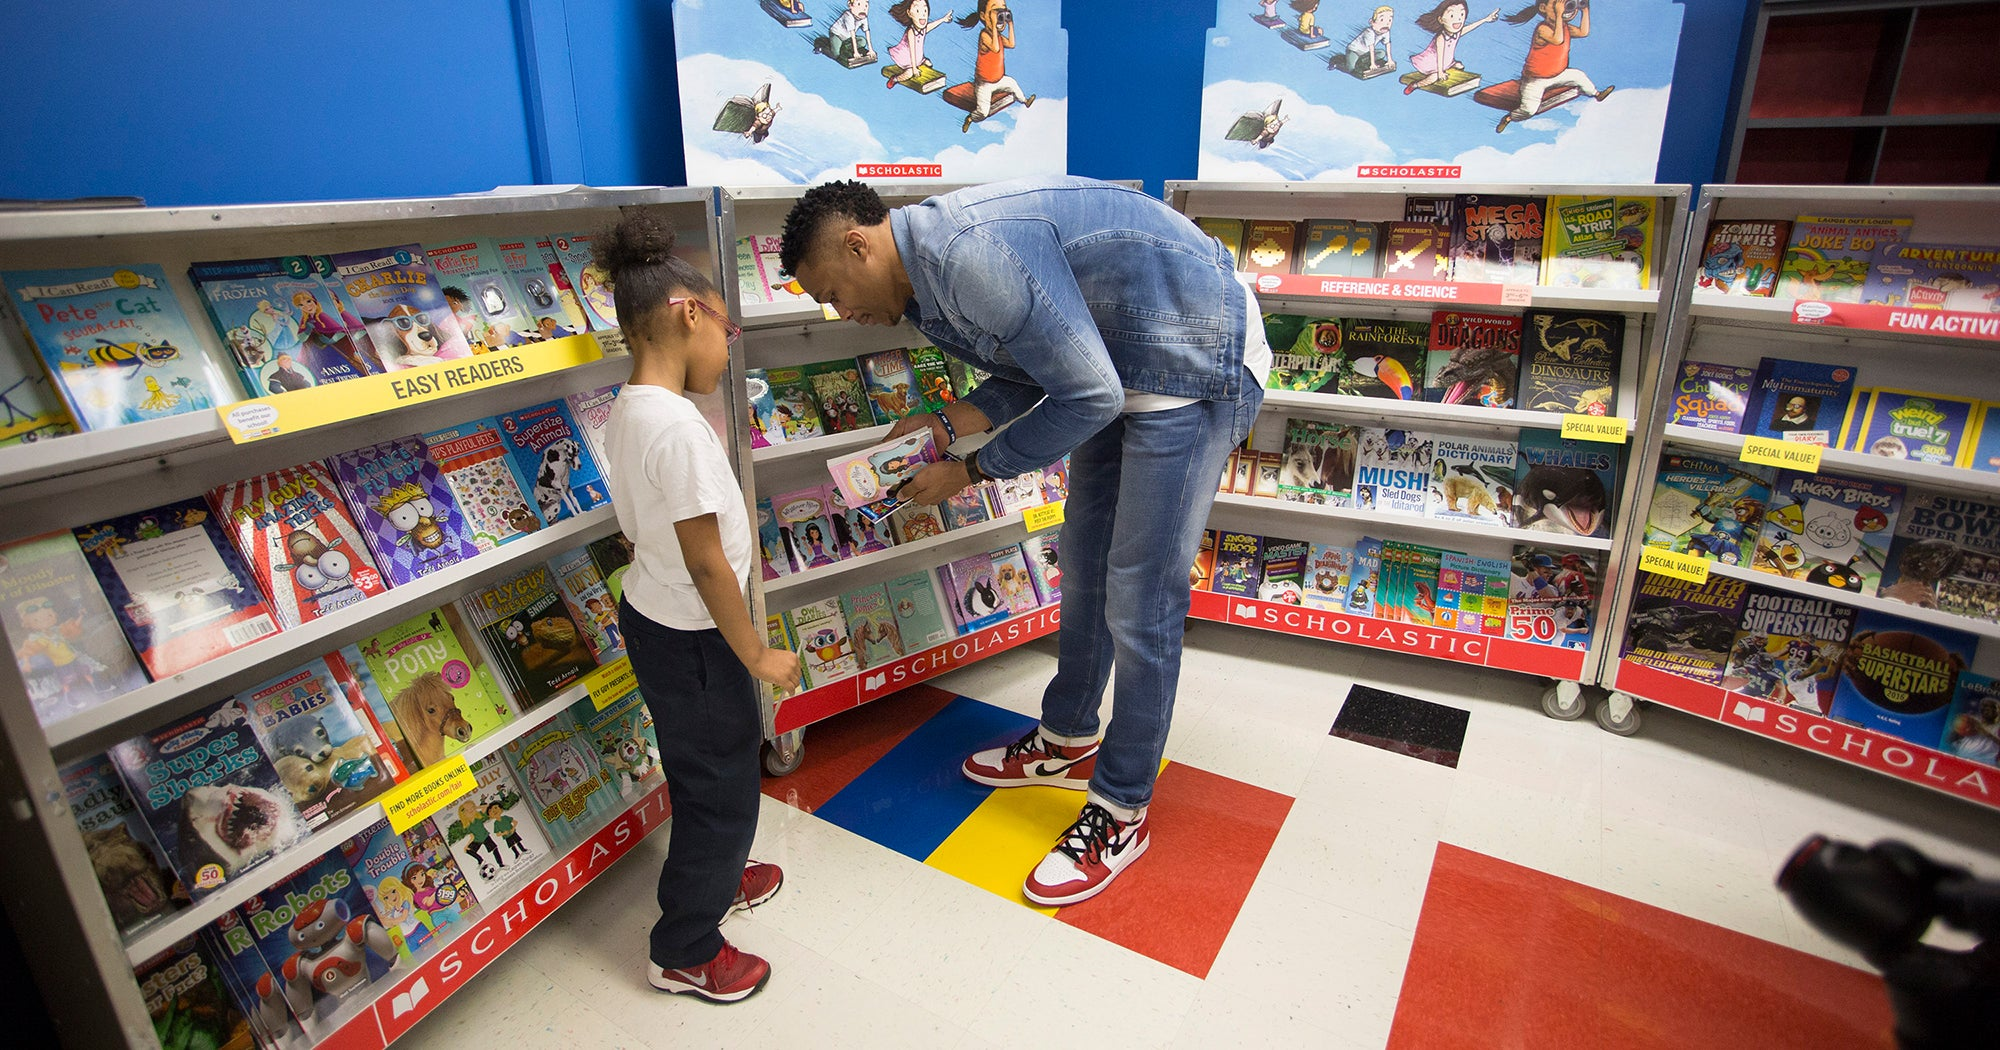 Book Fairs Were A Staple Of Our Childhood. Their Impact Never Really Went Away